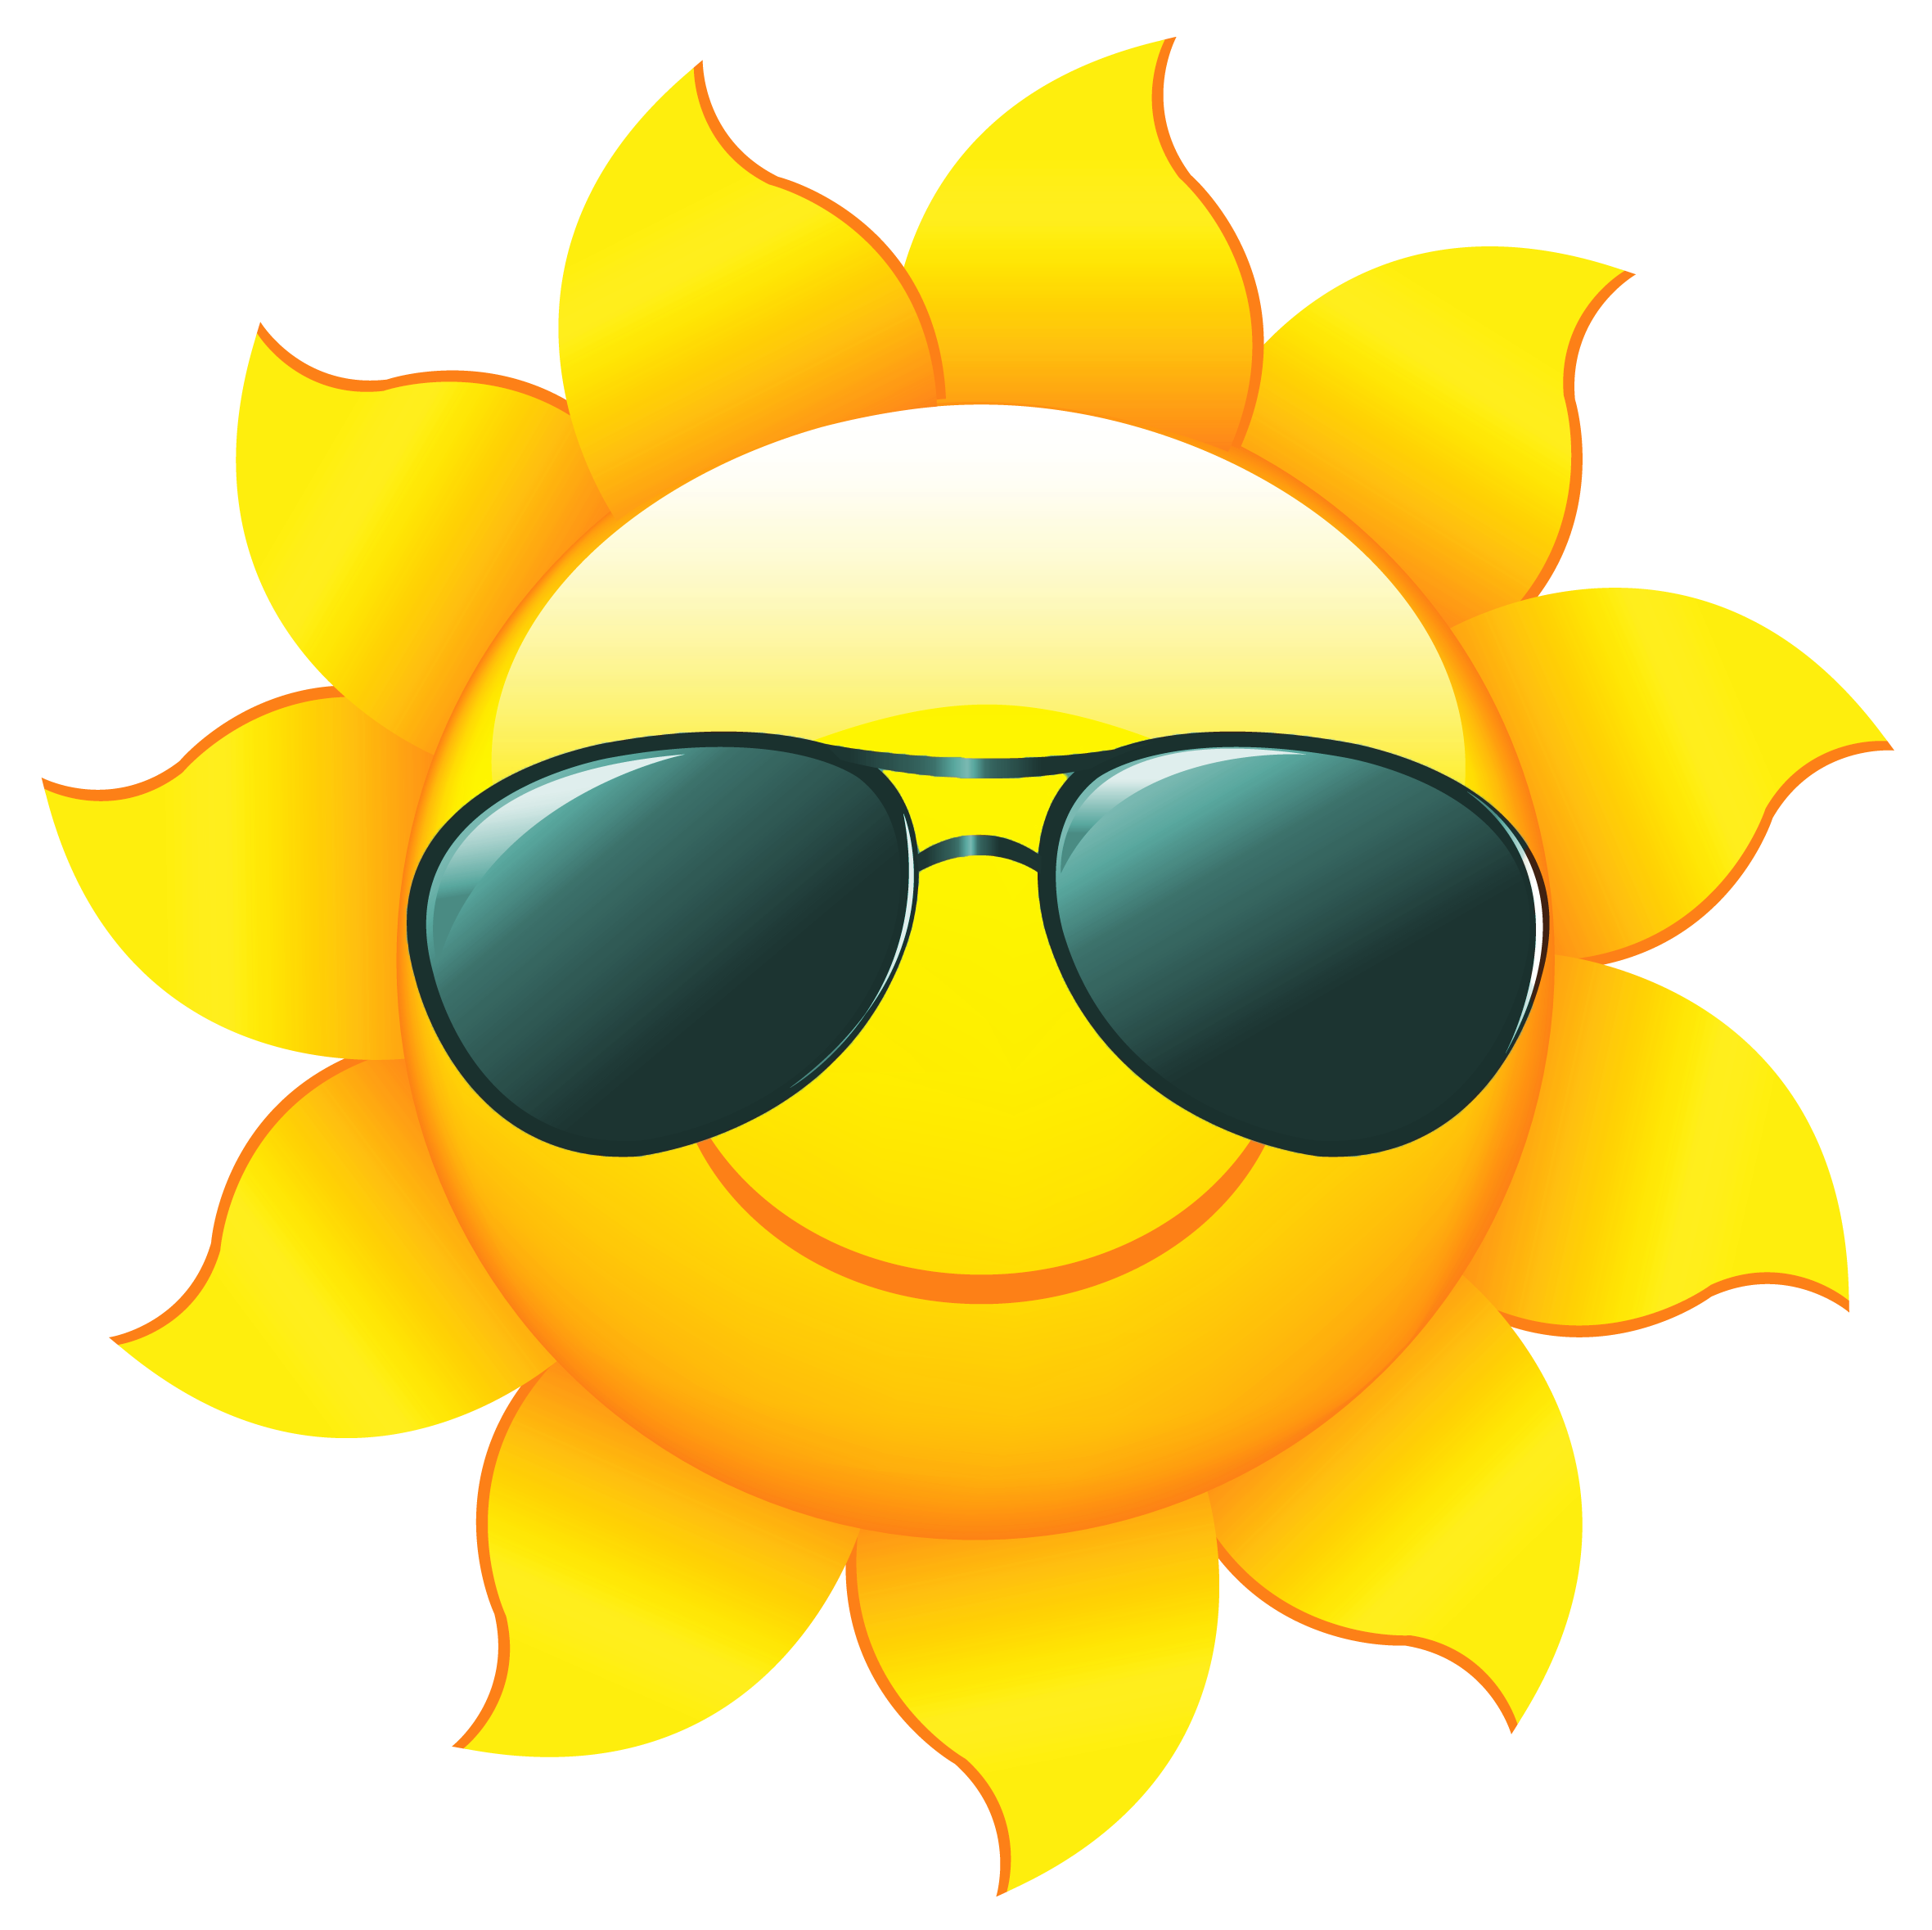 Sun clipart no background stock Community Events Calendar 6.30-7.6.2018 - Town of Bedford stock